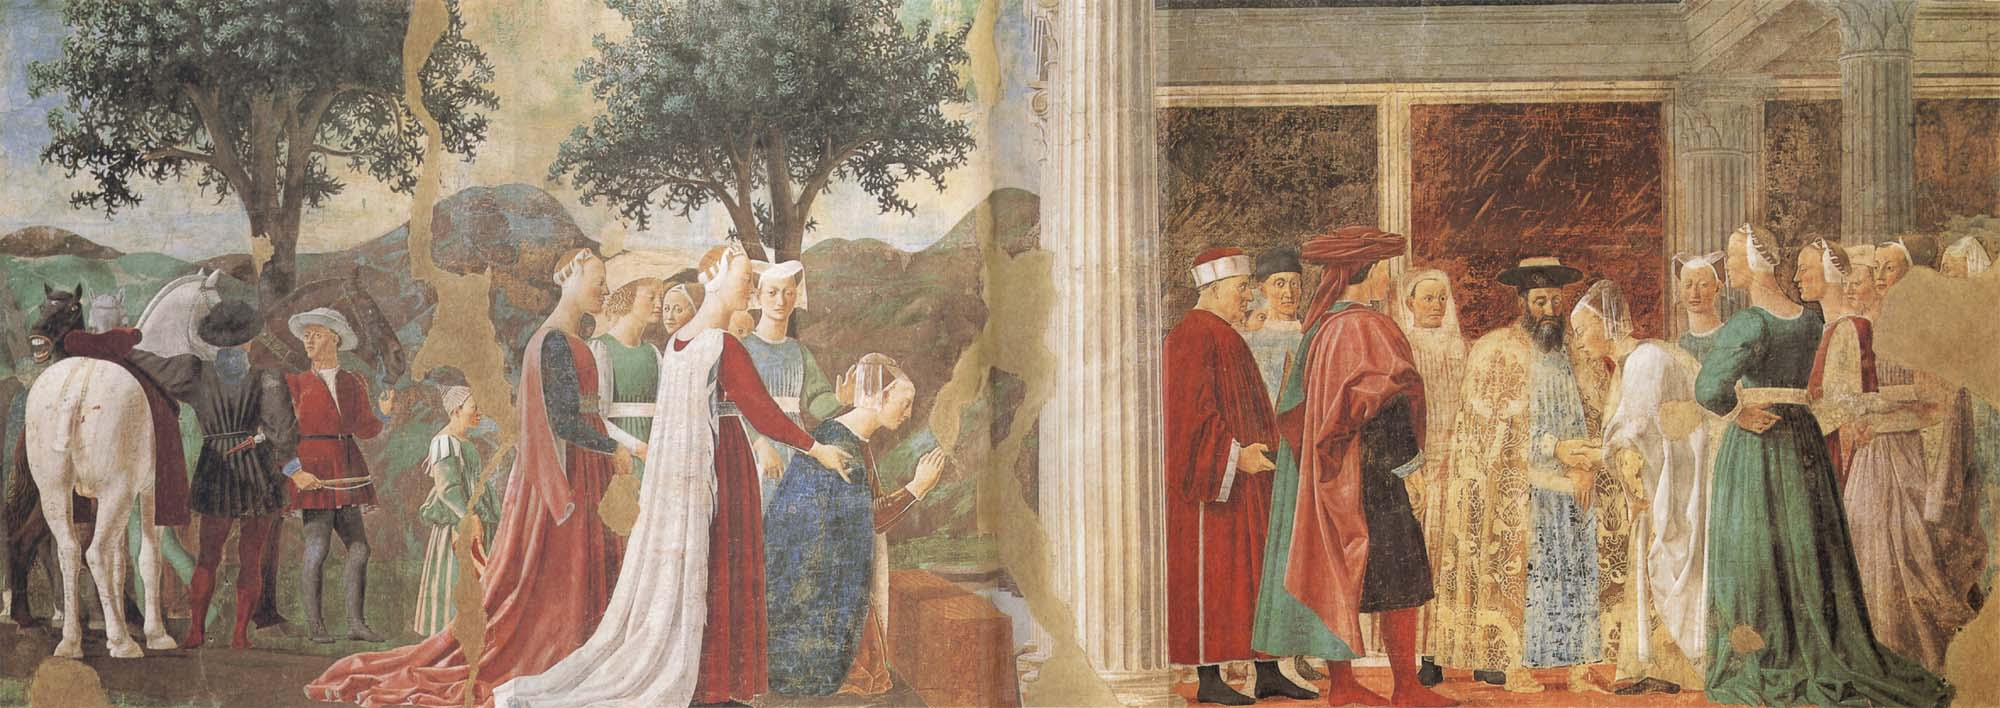 a literary analysis of francesco del cossas meeting of solomon and the queen of sheba Queen of sheba's wiki: the queen of sheba was the queen of egypt and hence sheba's meeting with solomon bearing rich gifts foreshadowed the adoration of.